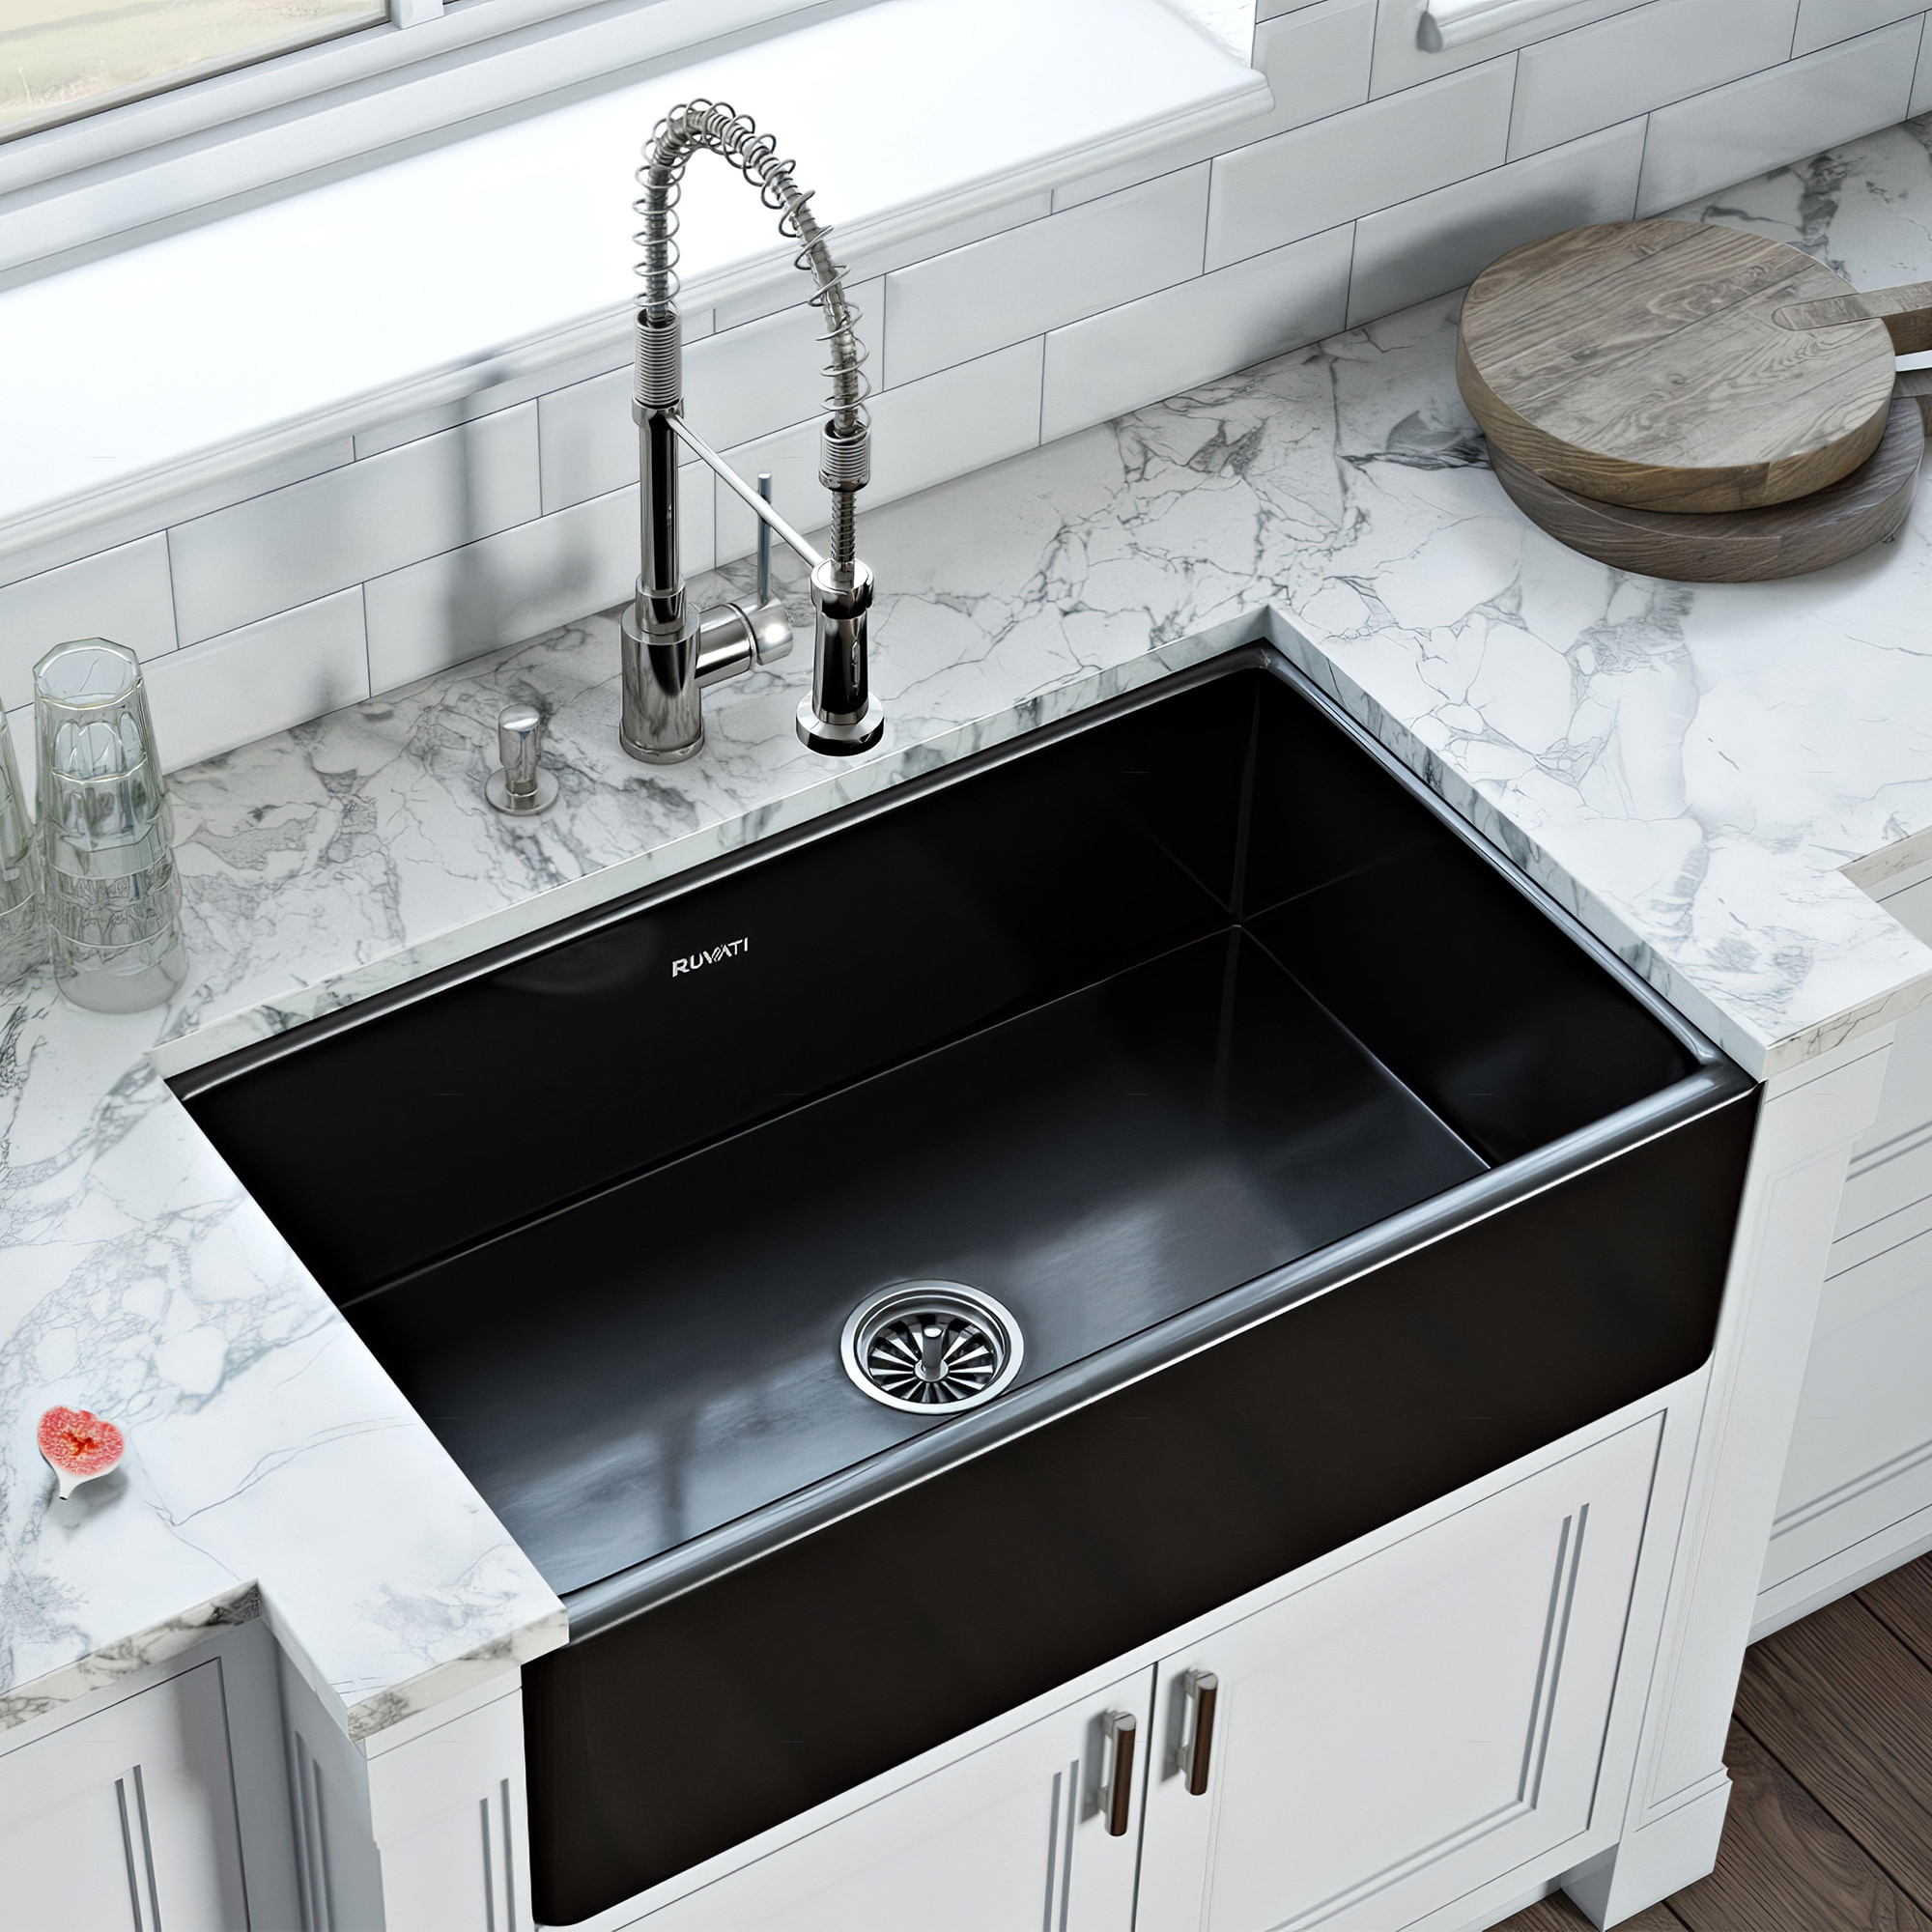 Picture of: Shop Ruvati 33 X 20 Inch Fireclay Reversible Farmhouse Apron Front Kitchen Sink Single Bowl Gloss Black Rvl2300bk Overstock 26959139